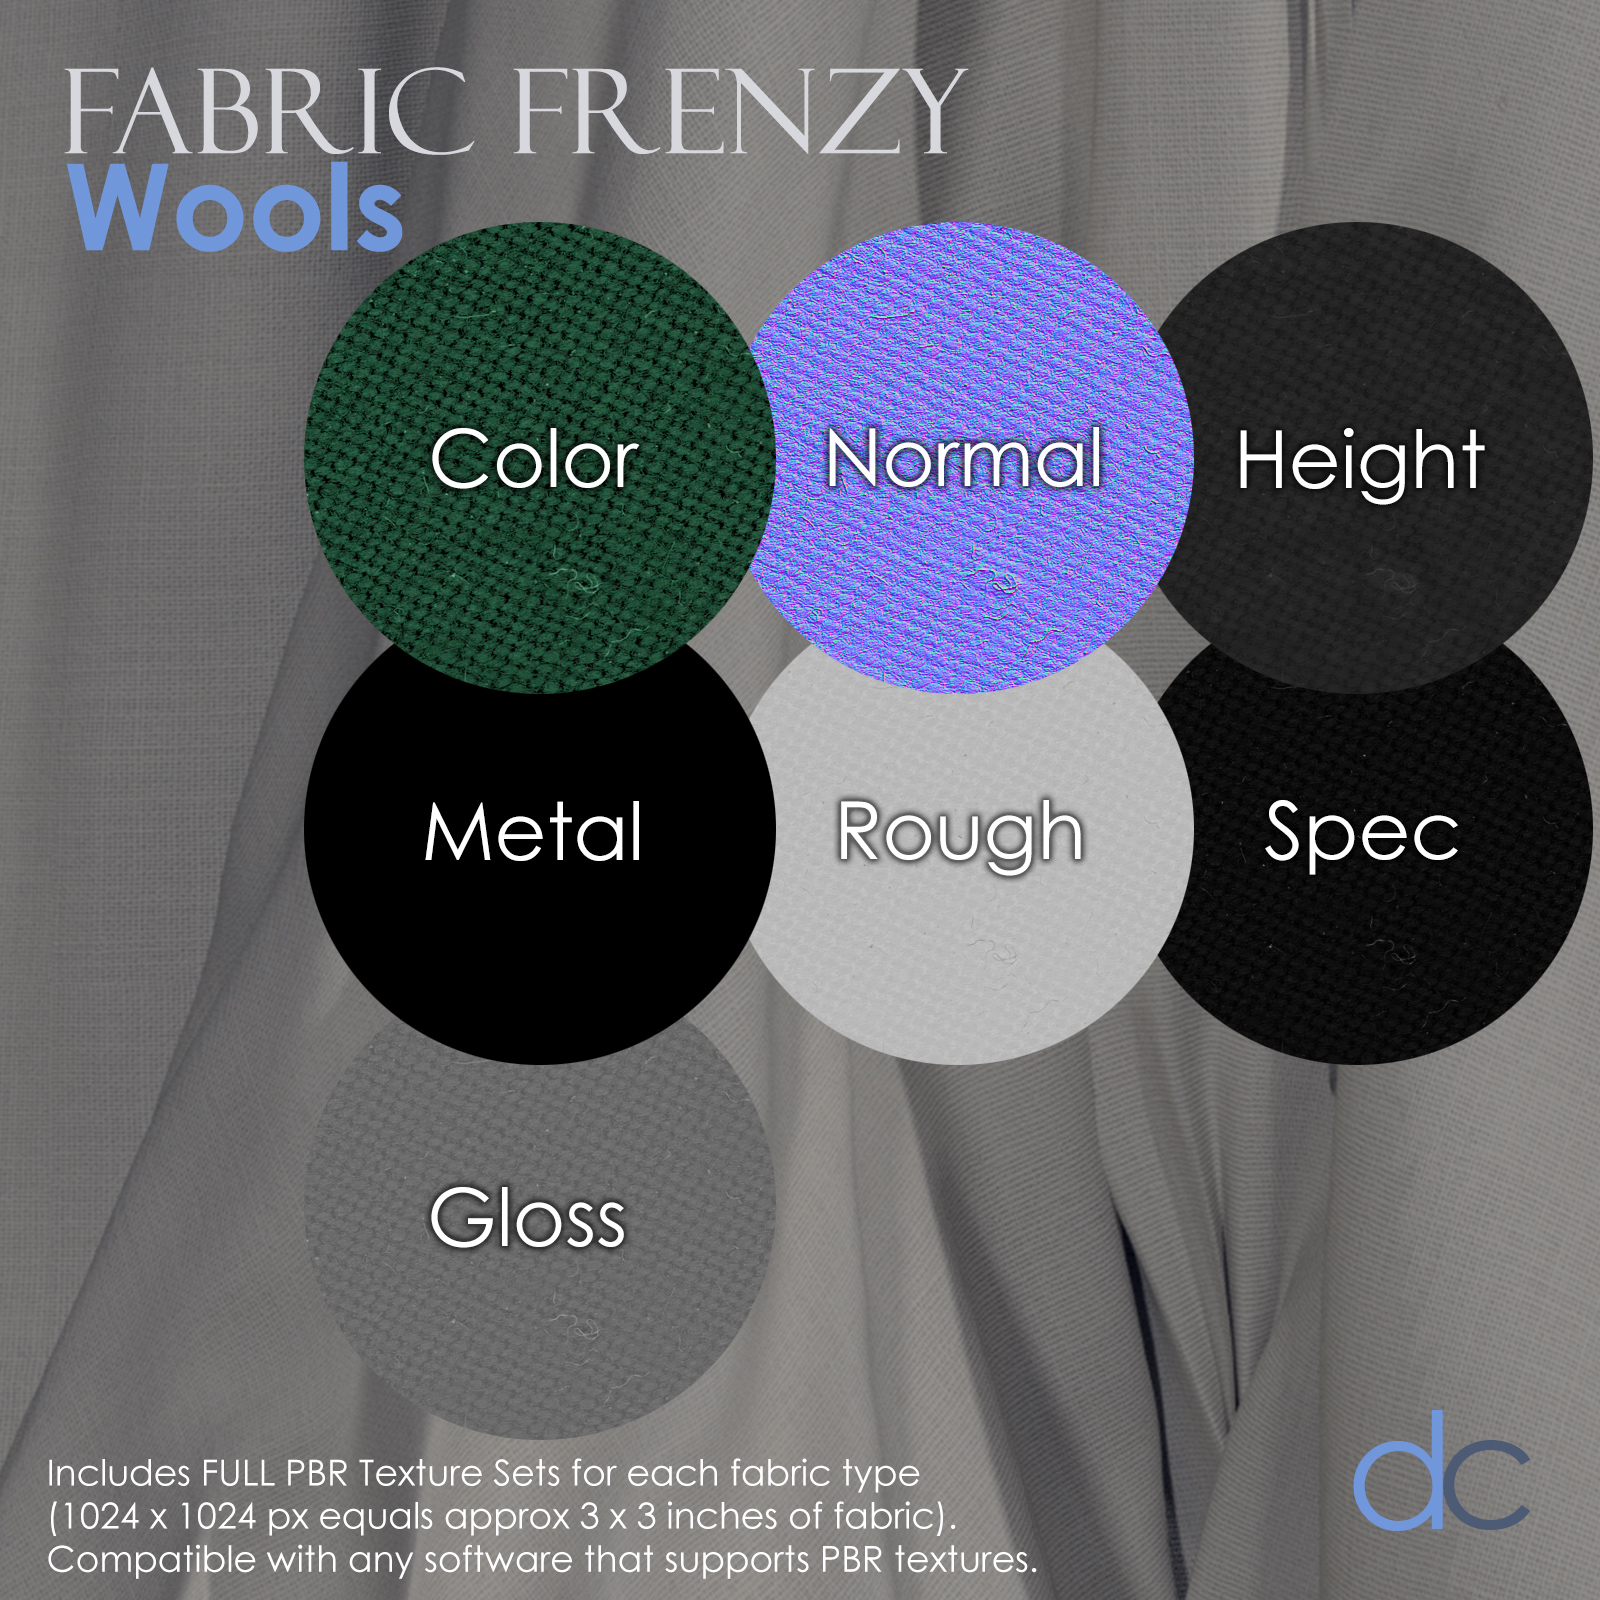 Fabric Frenzy: Wools PBR Textures and Poser Shaders 3D